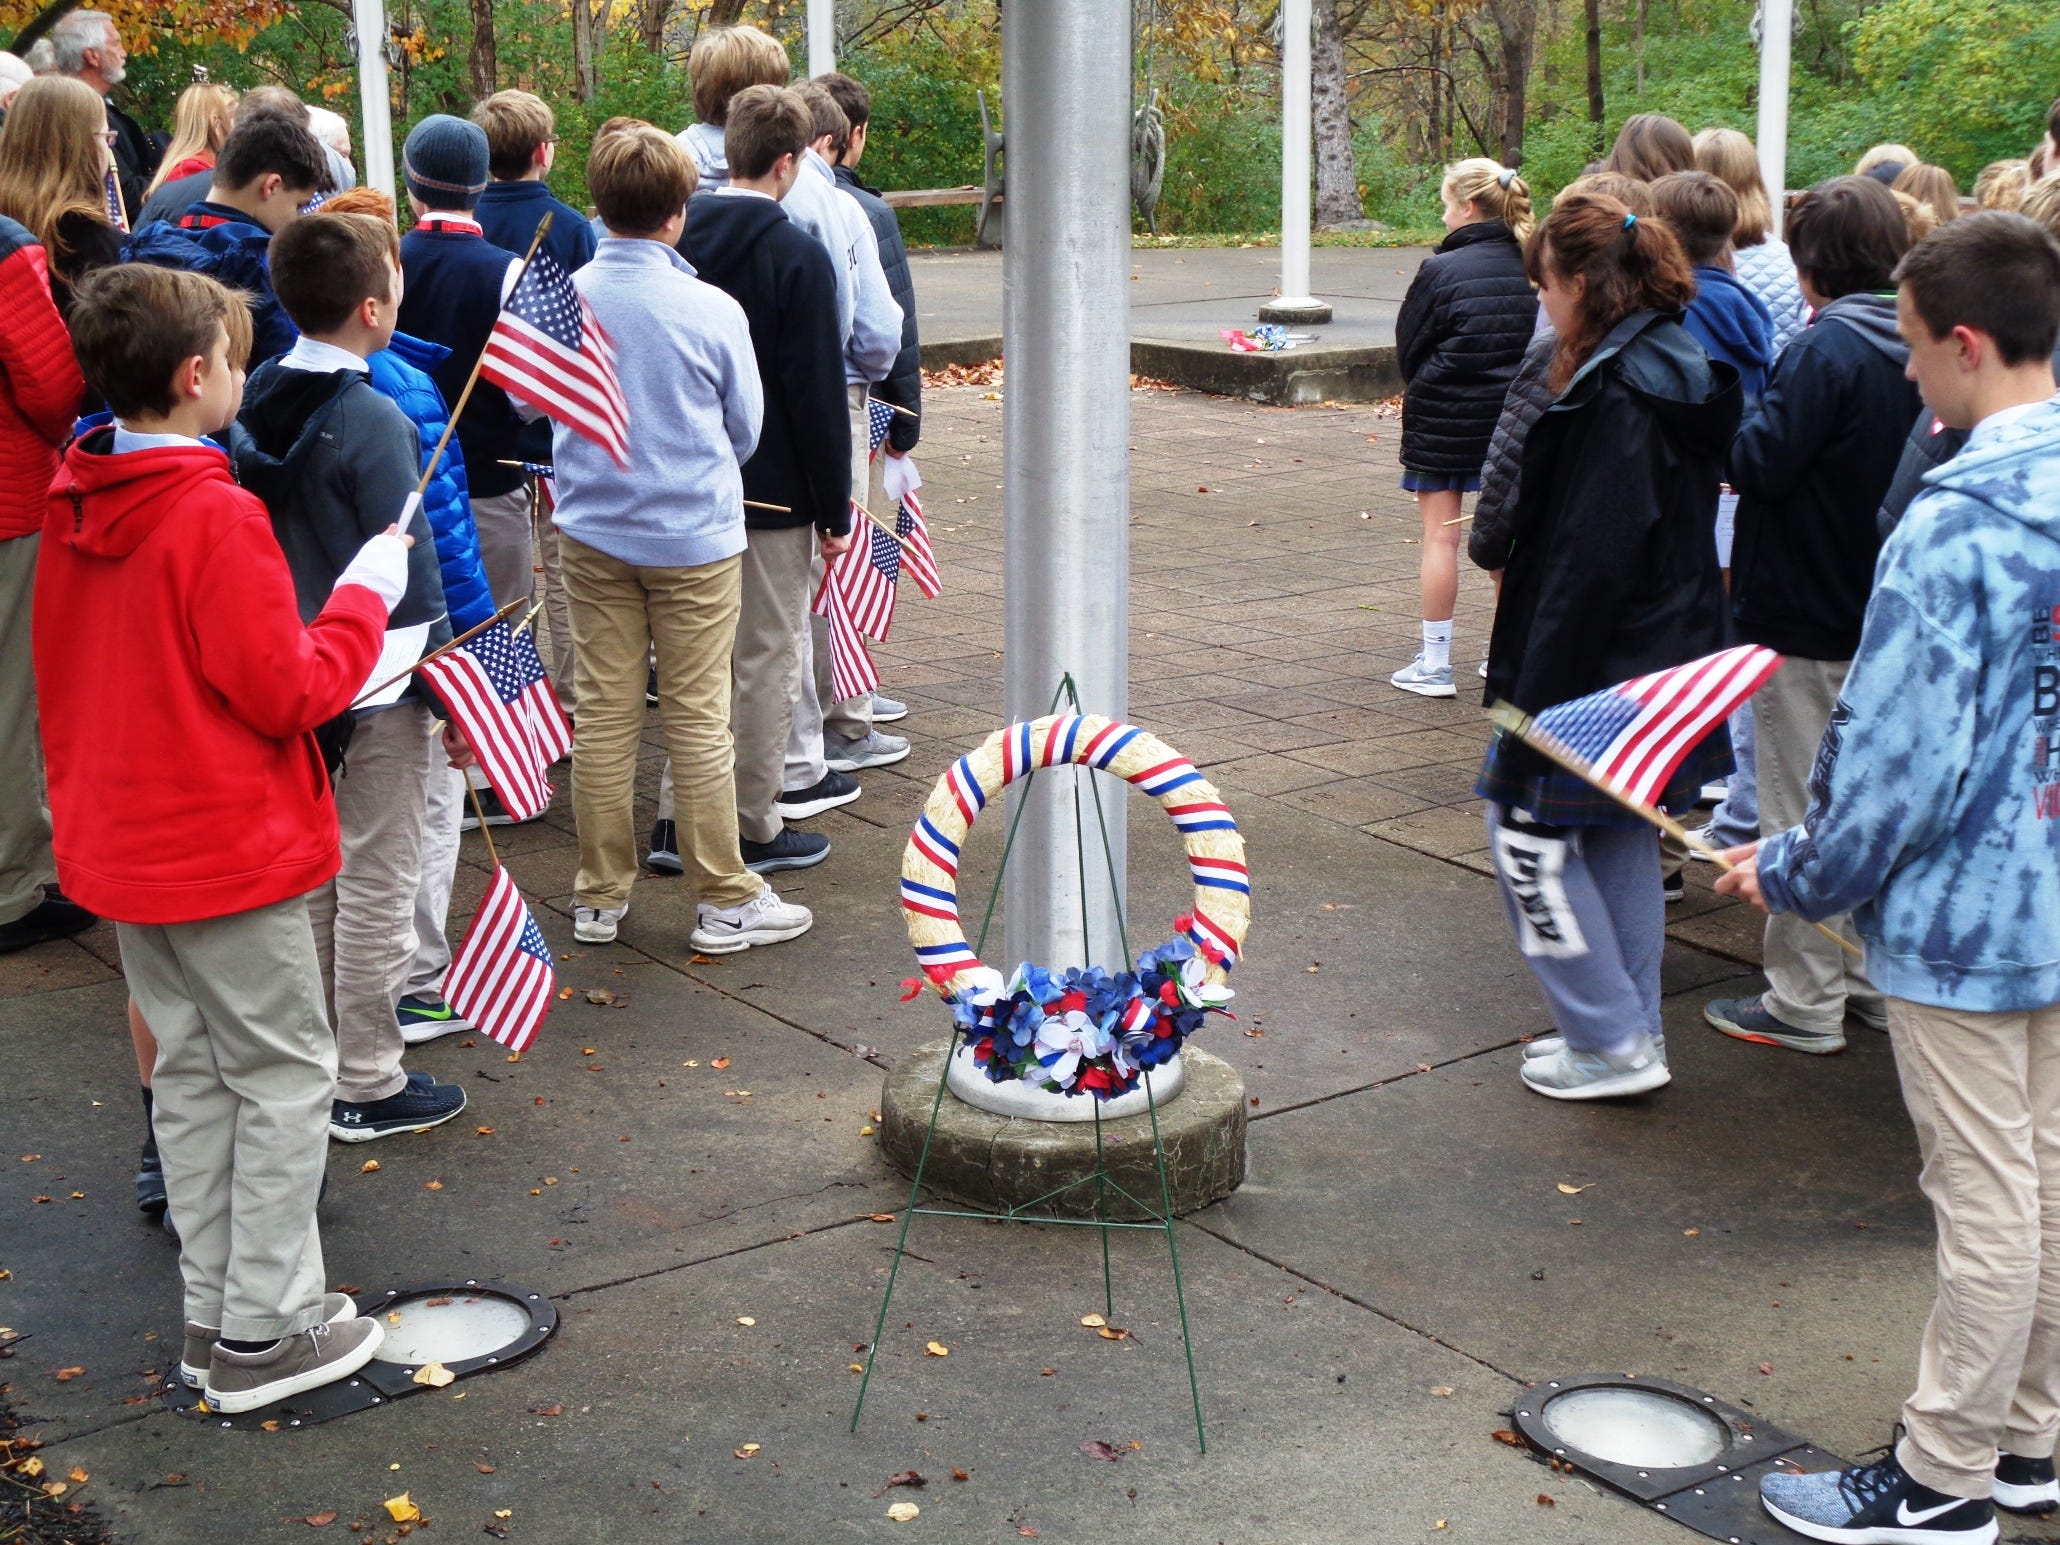 Students placed a wreath at the base of the American flag to honor all who have lost their lives in service to our country Nov. 9, 2018.